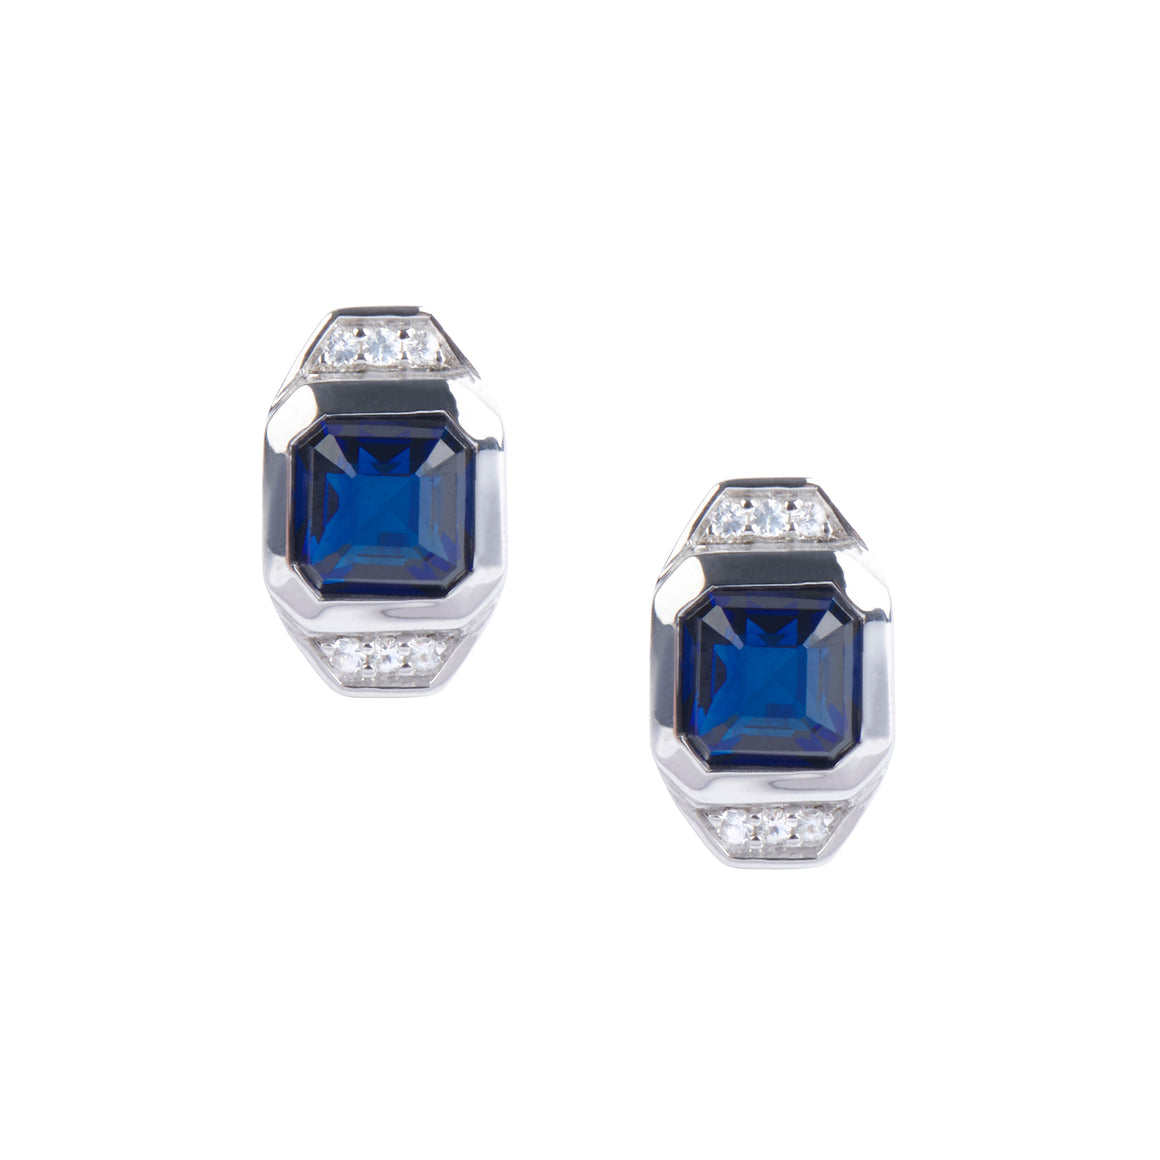 Asscher Cut London Blue Sapphire & White Topaz Post Stud Earrings in Silver